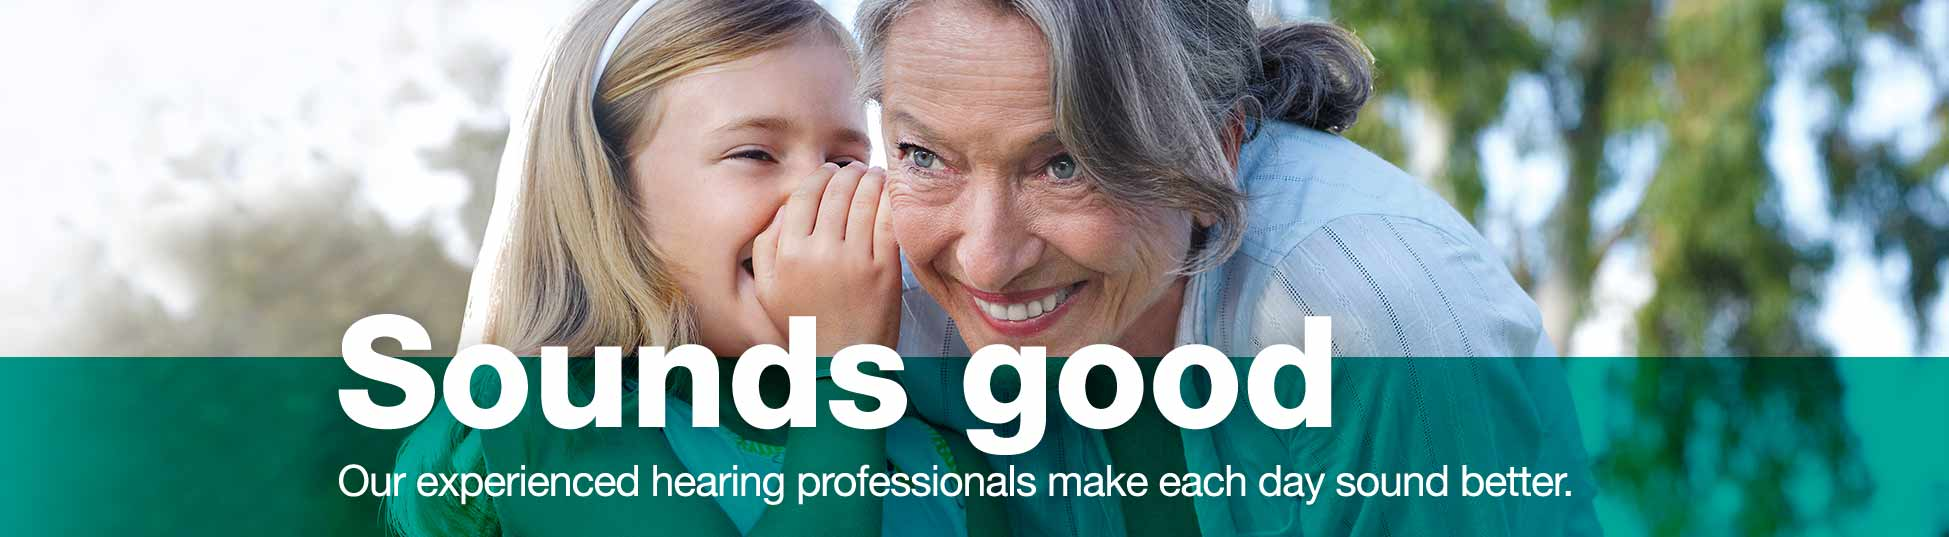 Sounds good. Our experienced hearing professionals make each day sound better.